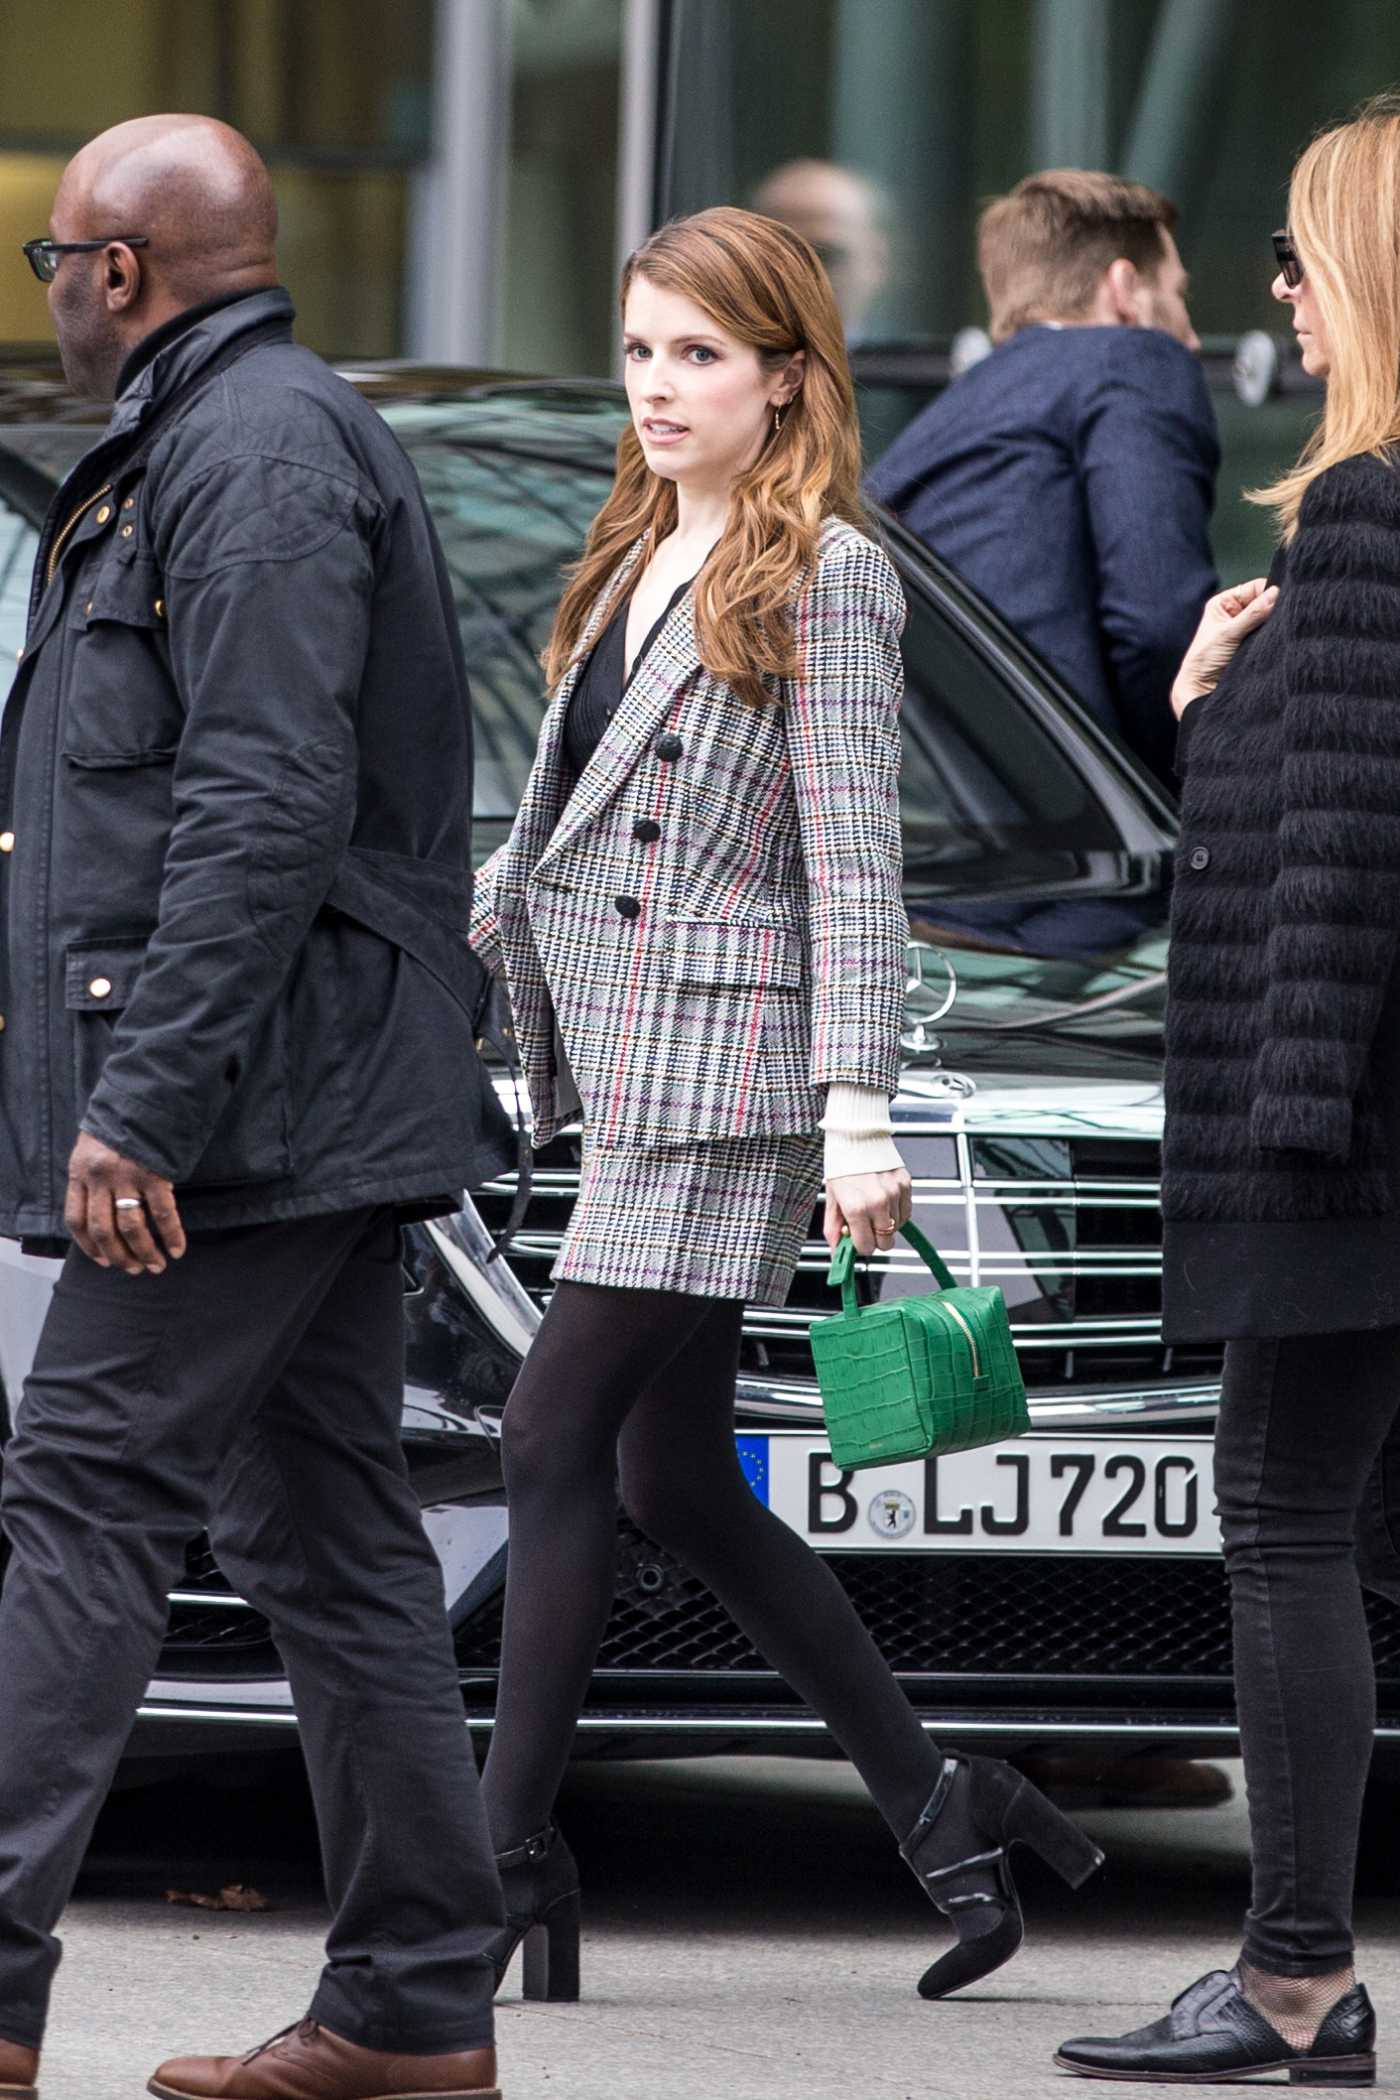 Anna Kendrick in a Gray Suit Was Seen Out in Berlin 02/17/2020